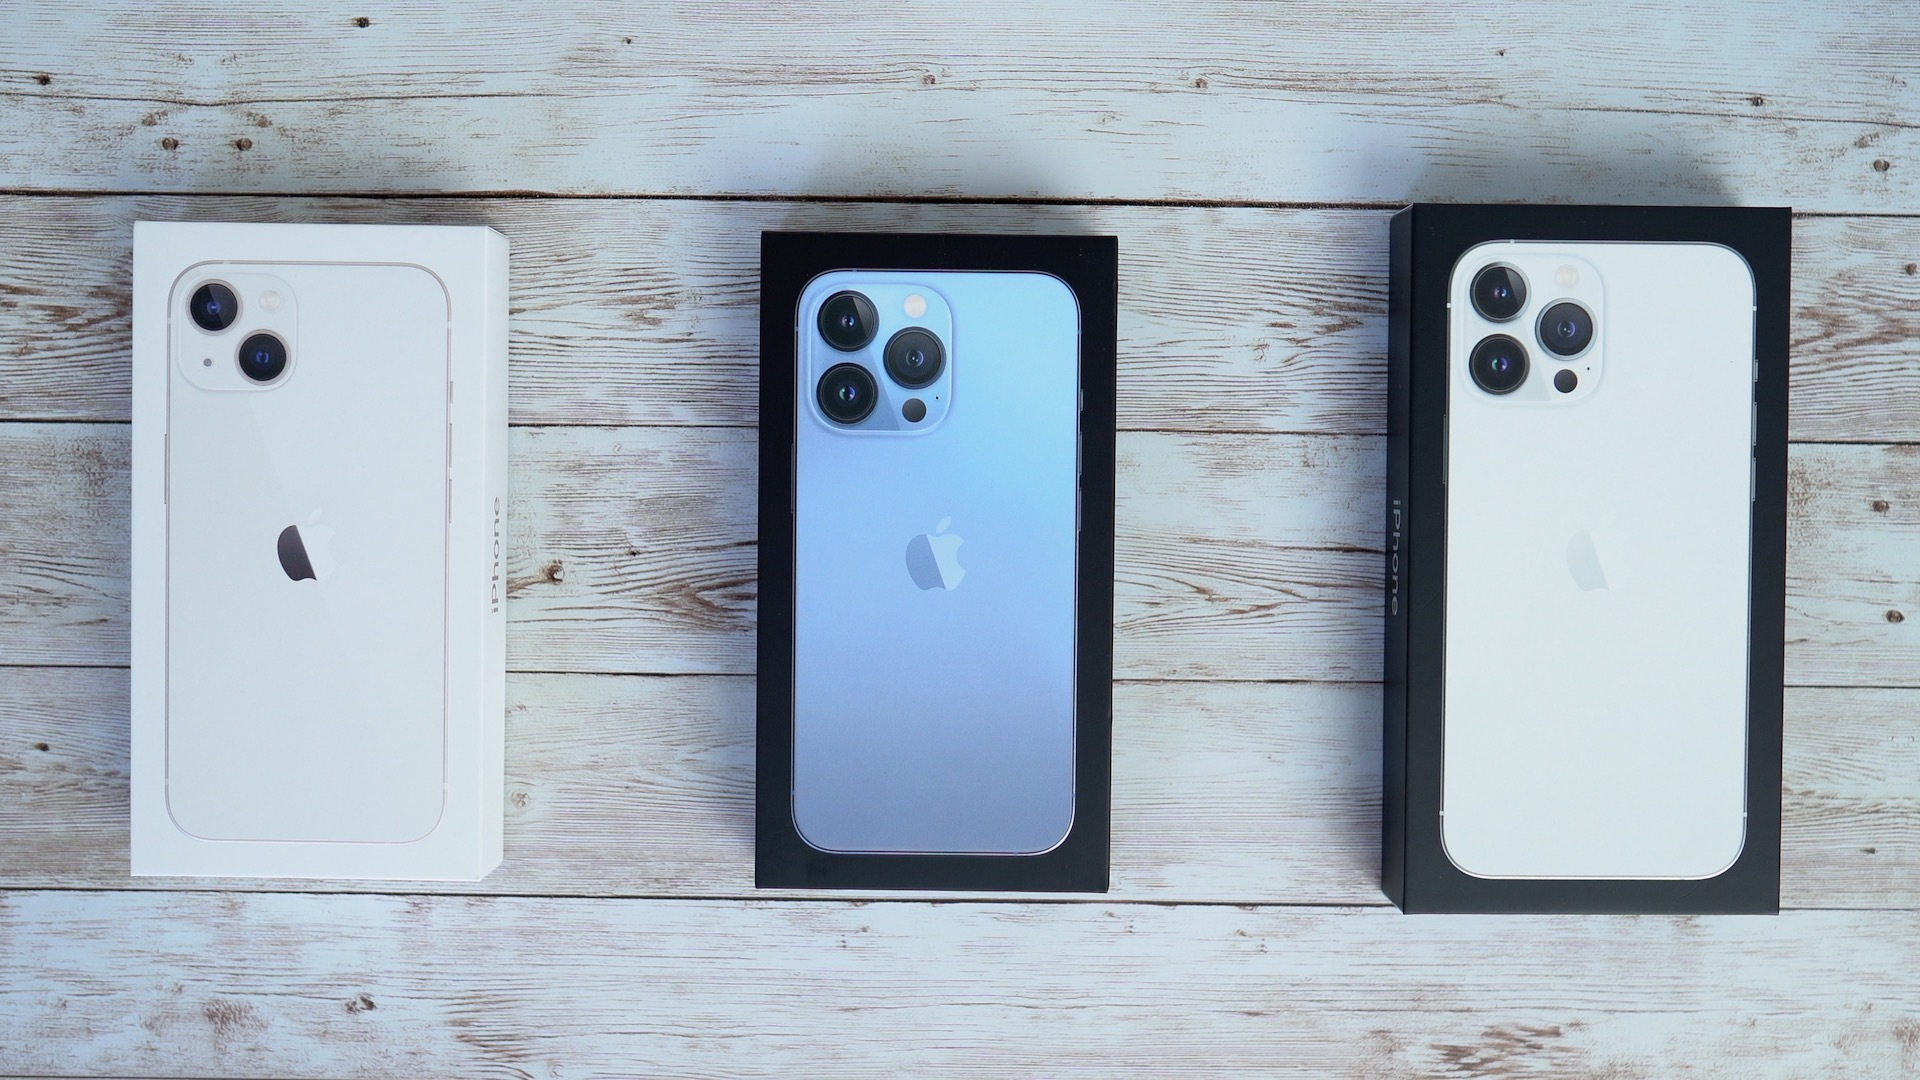 iphone 13 boxes